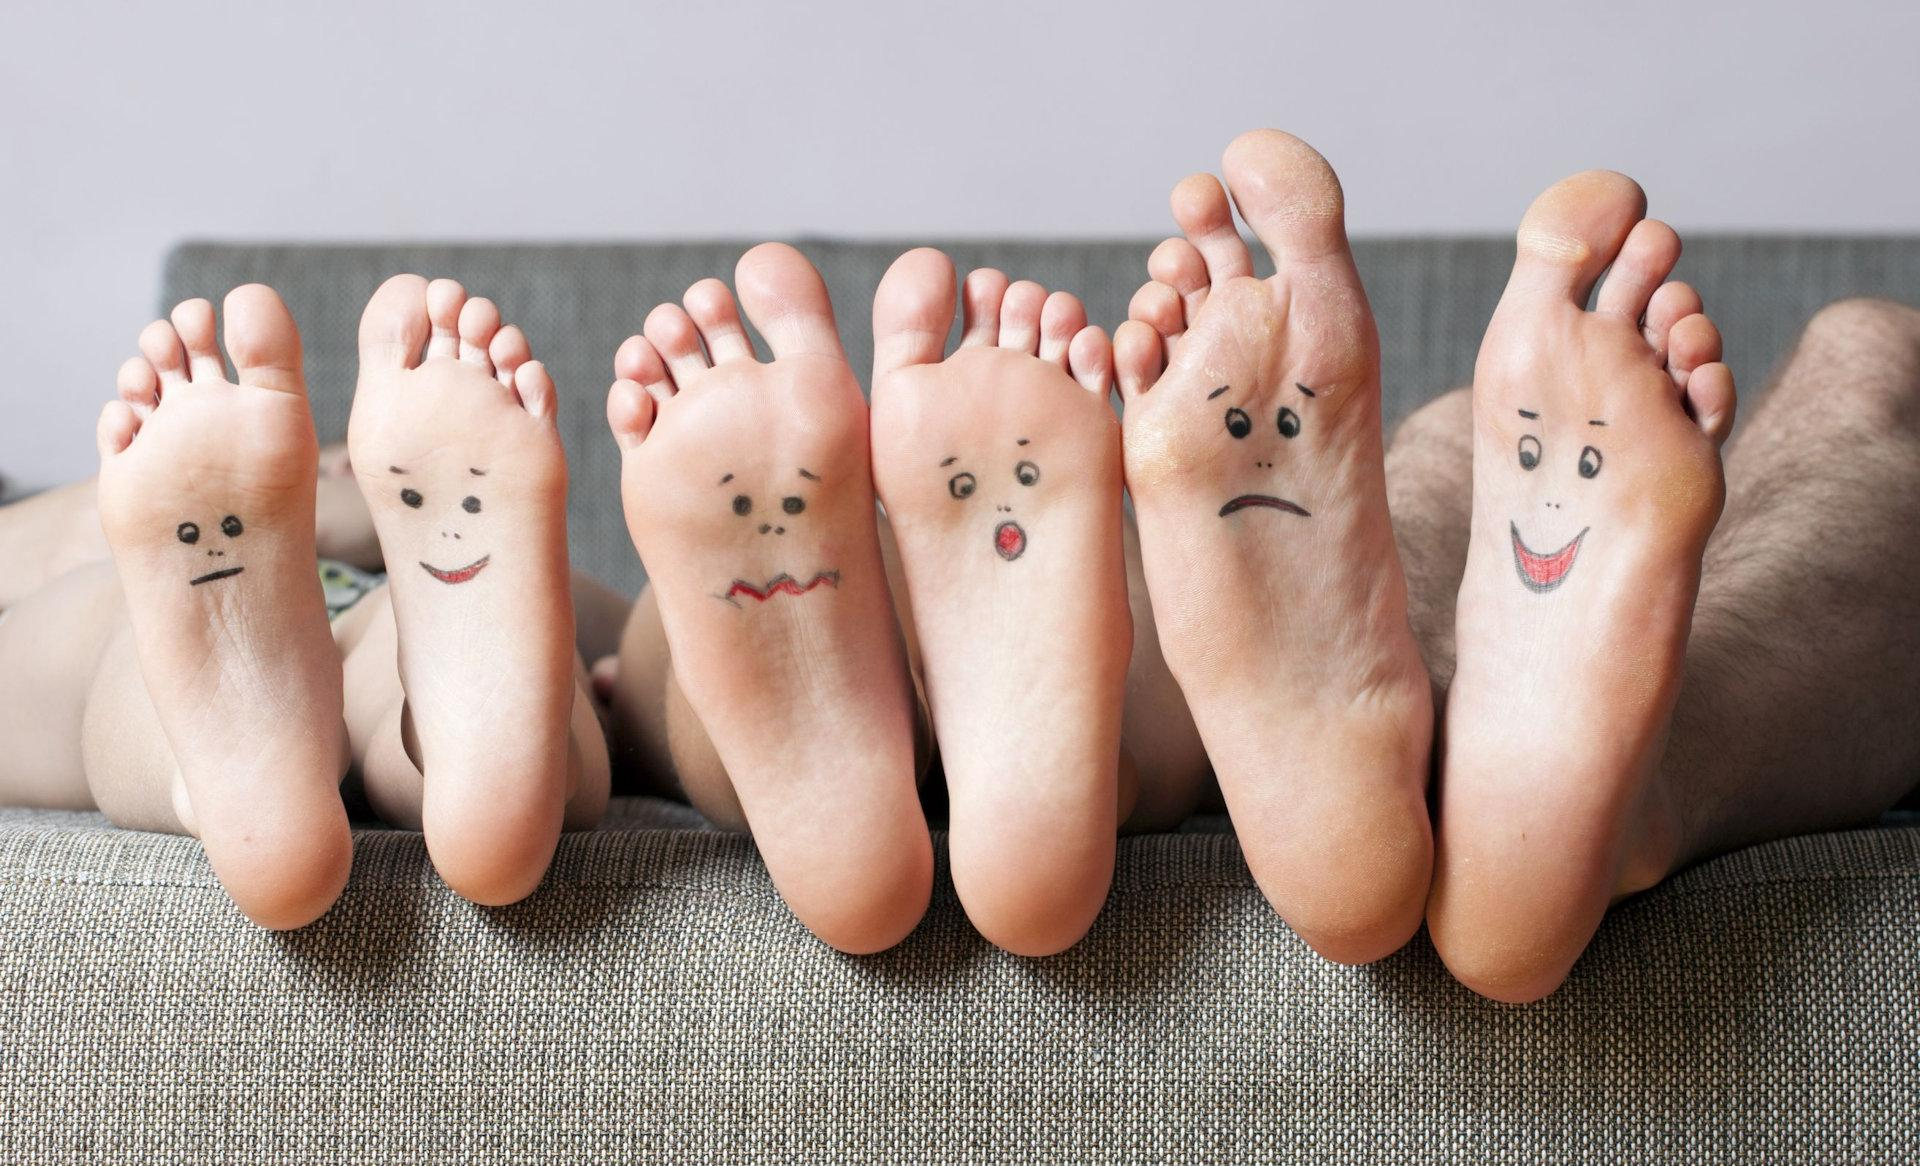 diabetes-and-the-feet-16970899_m